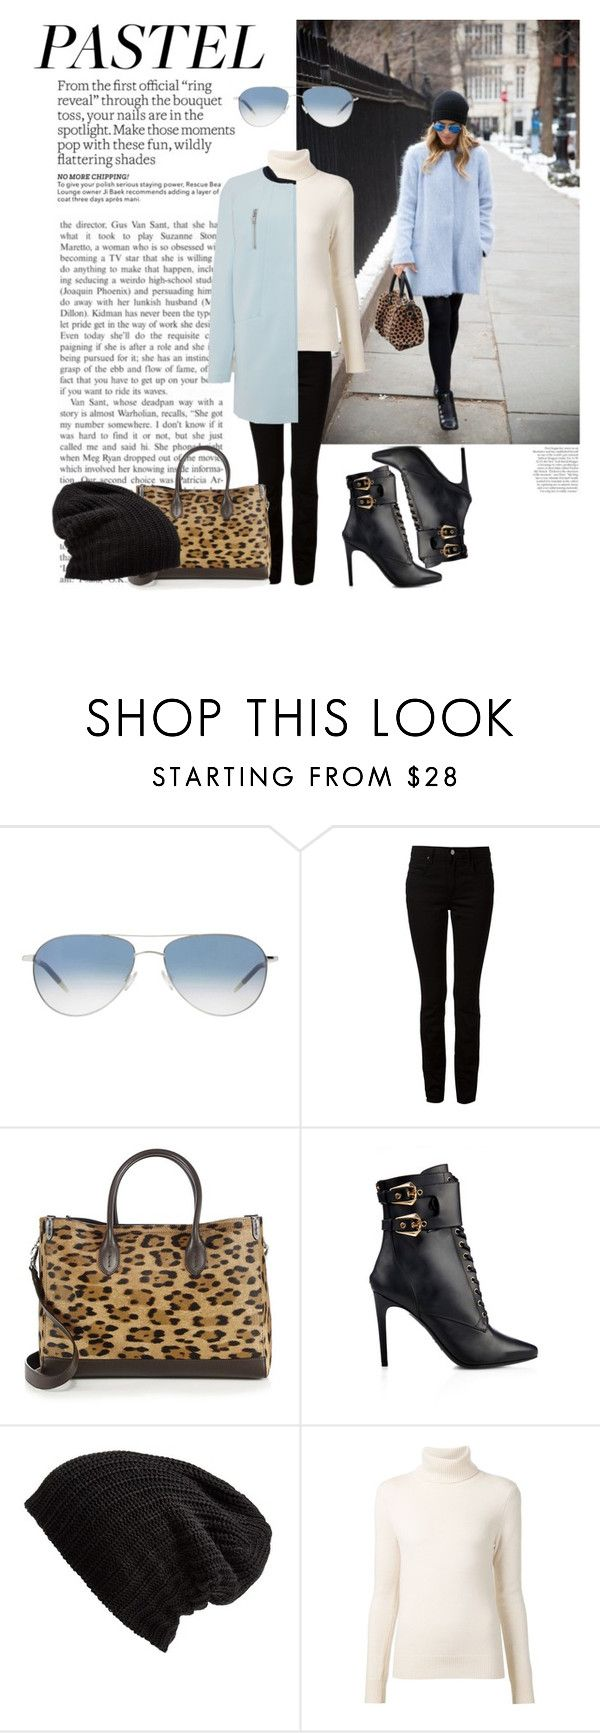 """""""Pastel for Winter"""" by katsin90 ❤ liked on Polyvore featuring Avenue, Oliver Peoples, Alexander Wang, Ralph Lauren, Balmain, Free People, Chloé and Y.A.S"""